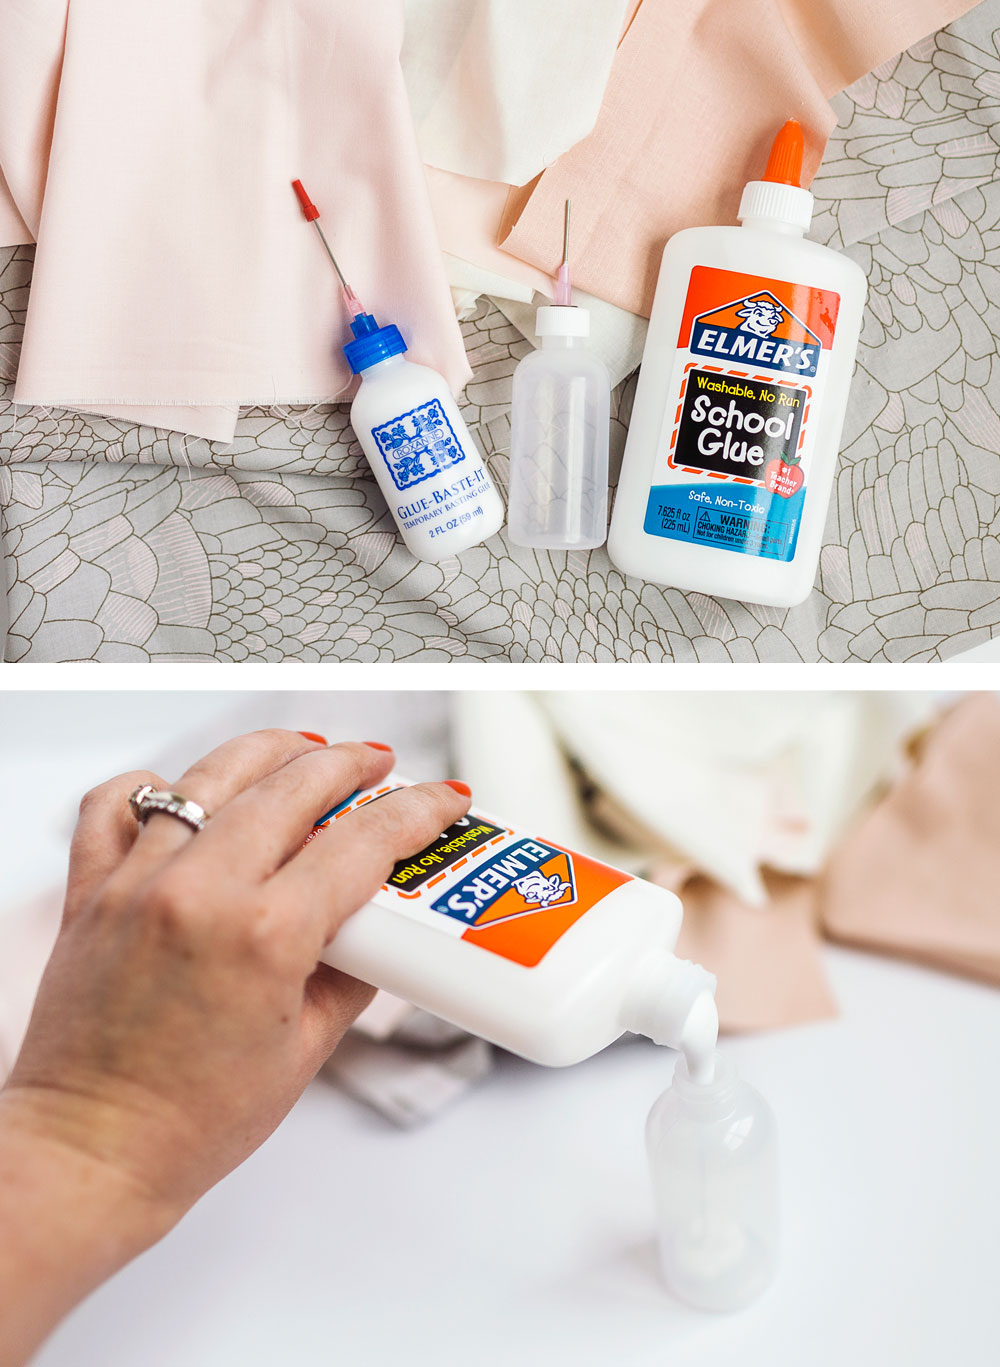 A complete tutorial on how glue basting seams will create accurate quilting and quilt pieces. Step by step instructions with photos showing you how easy glue basting can be.